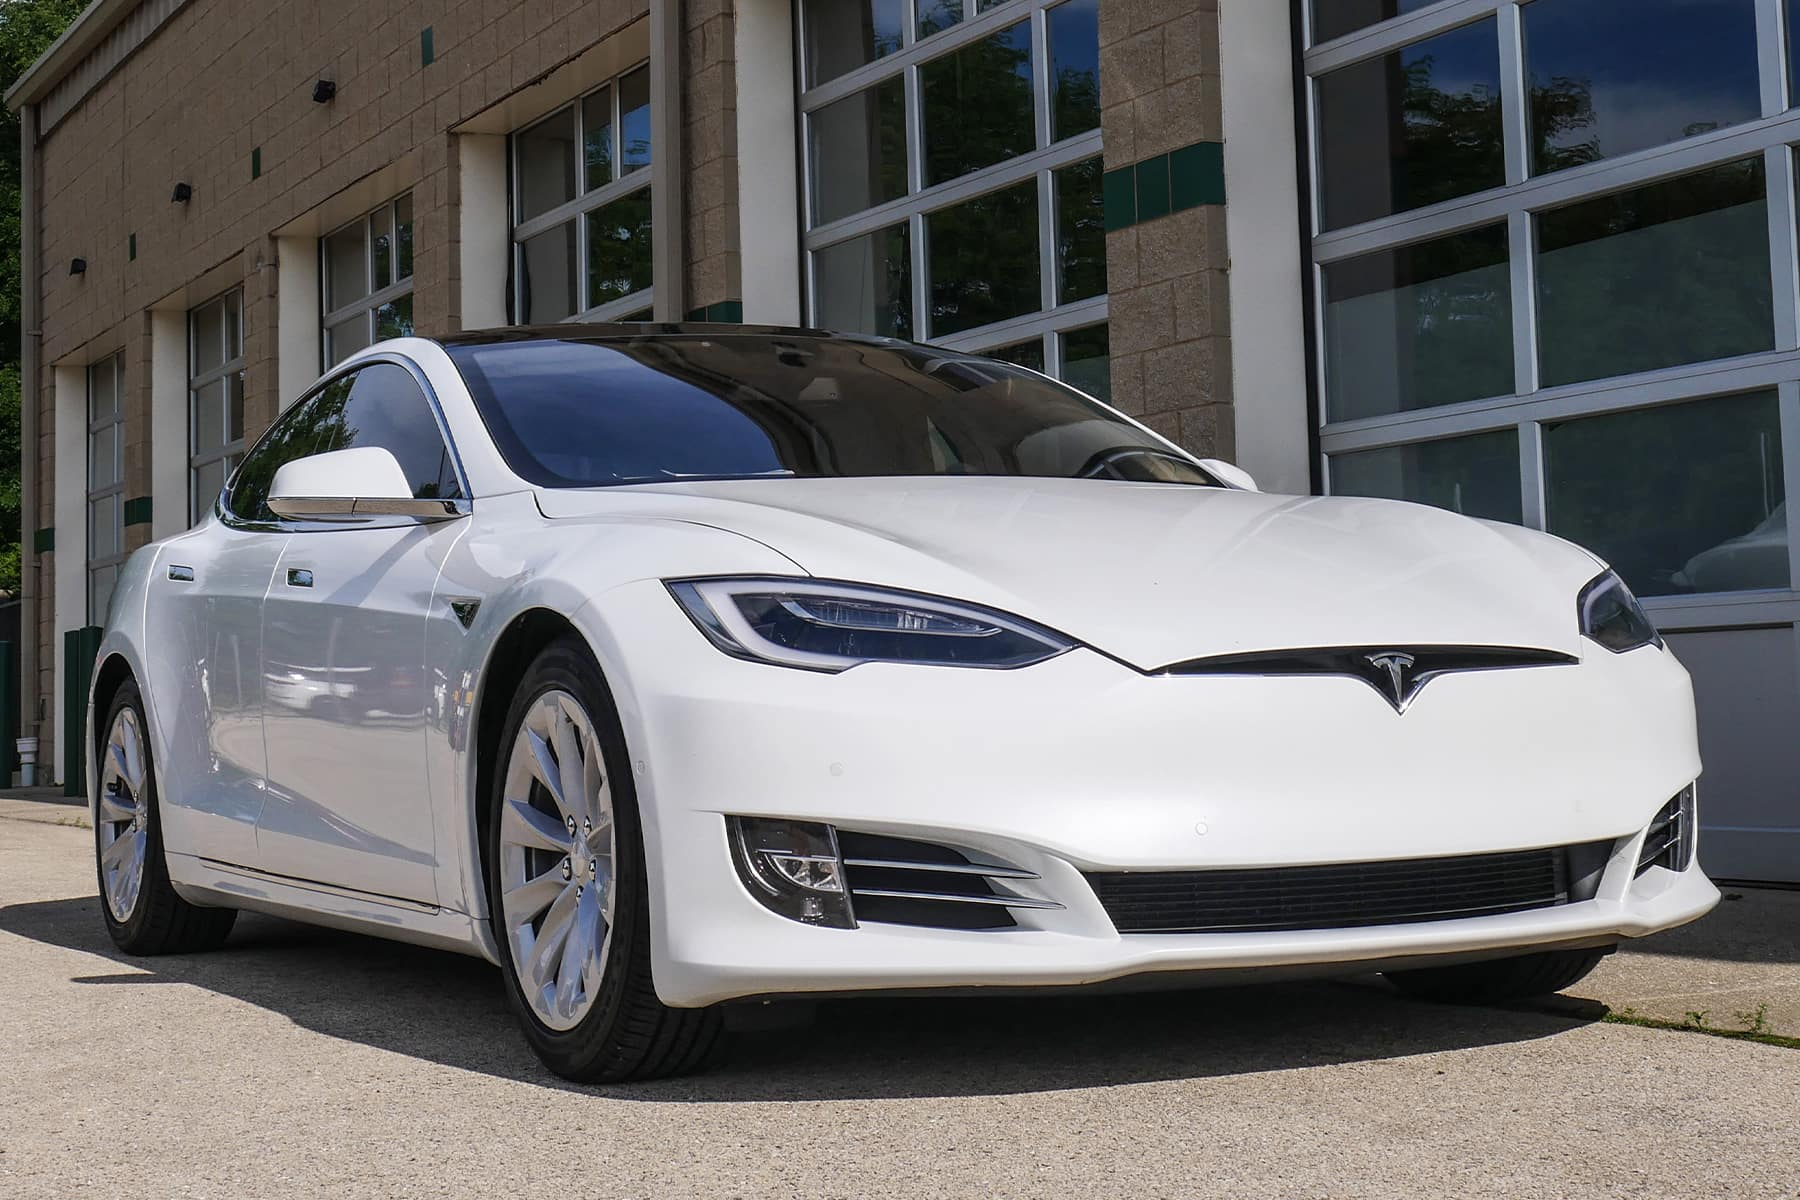 Tesla Model S Ready to Go